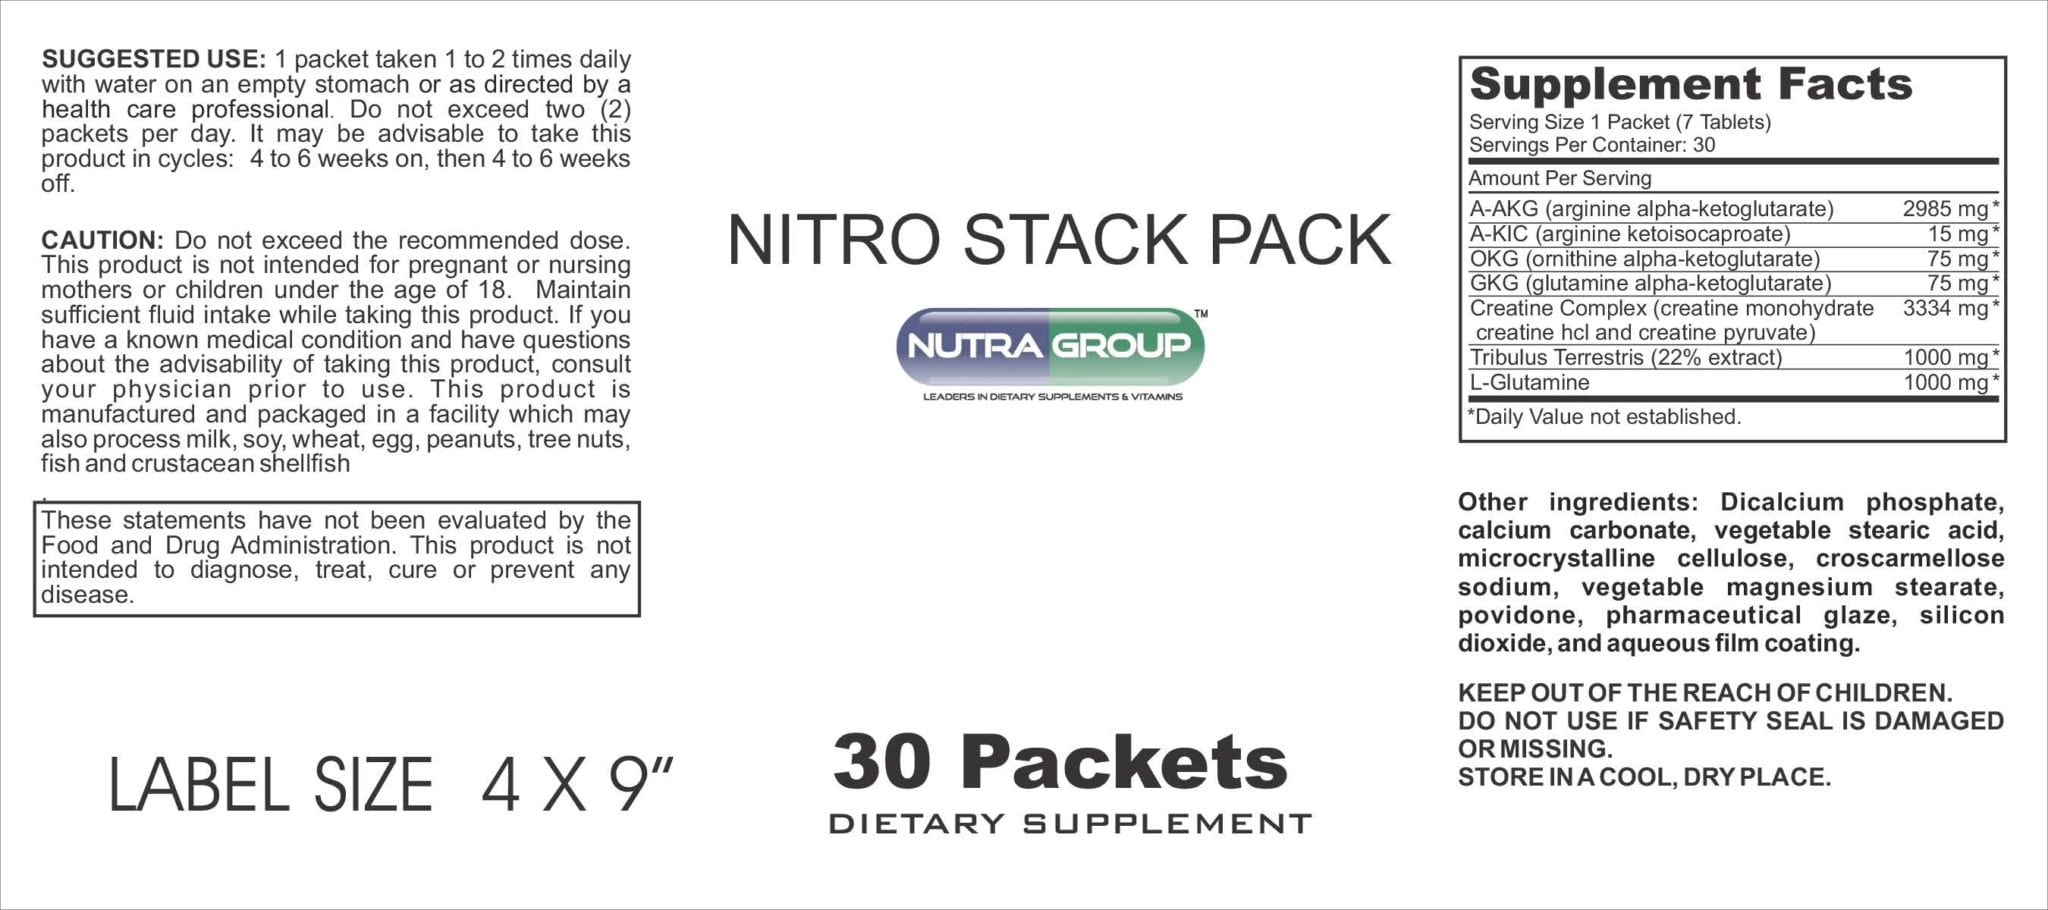 Private Label Nitro Stack Pack Supplement